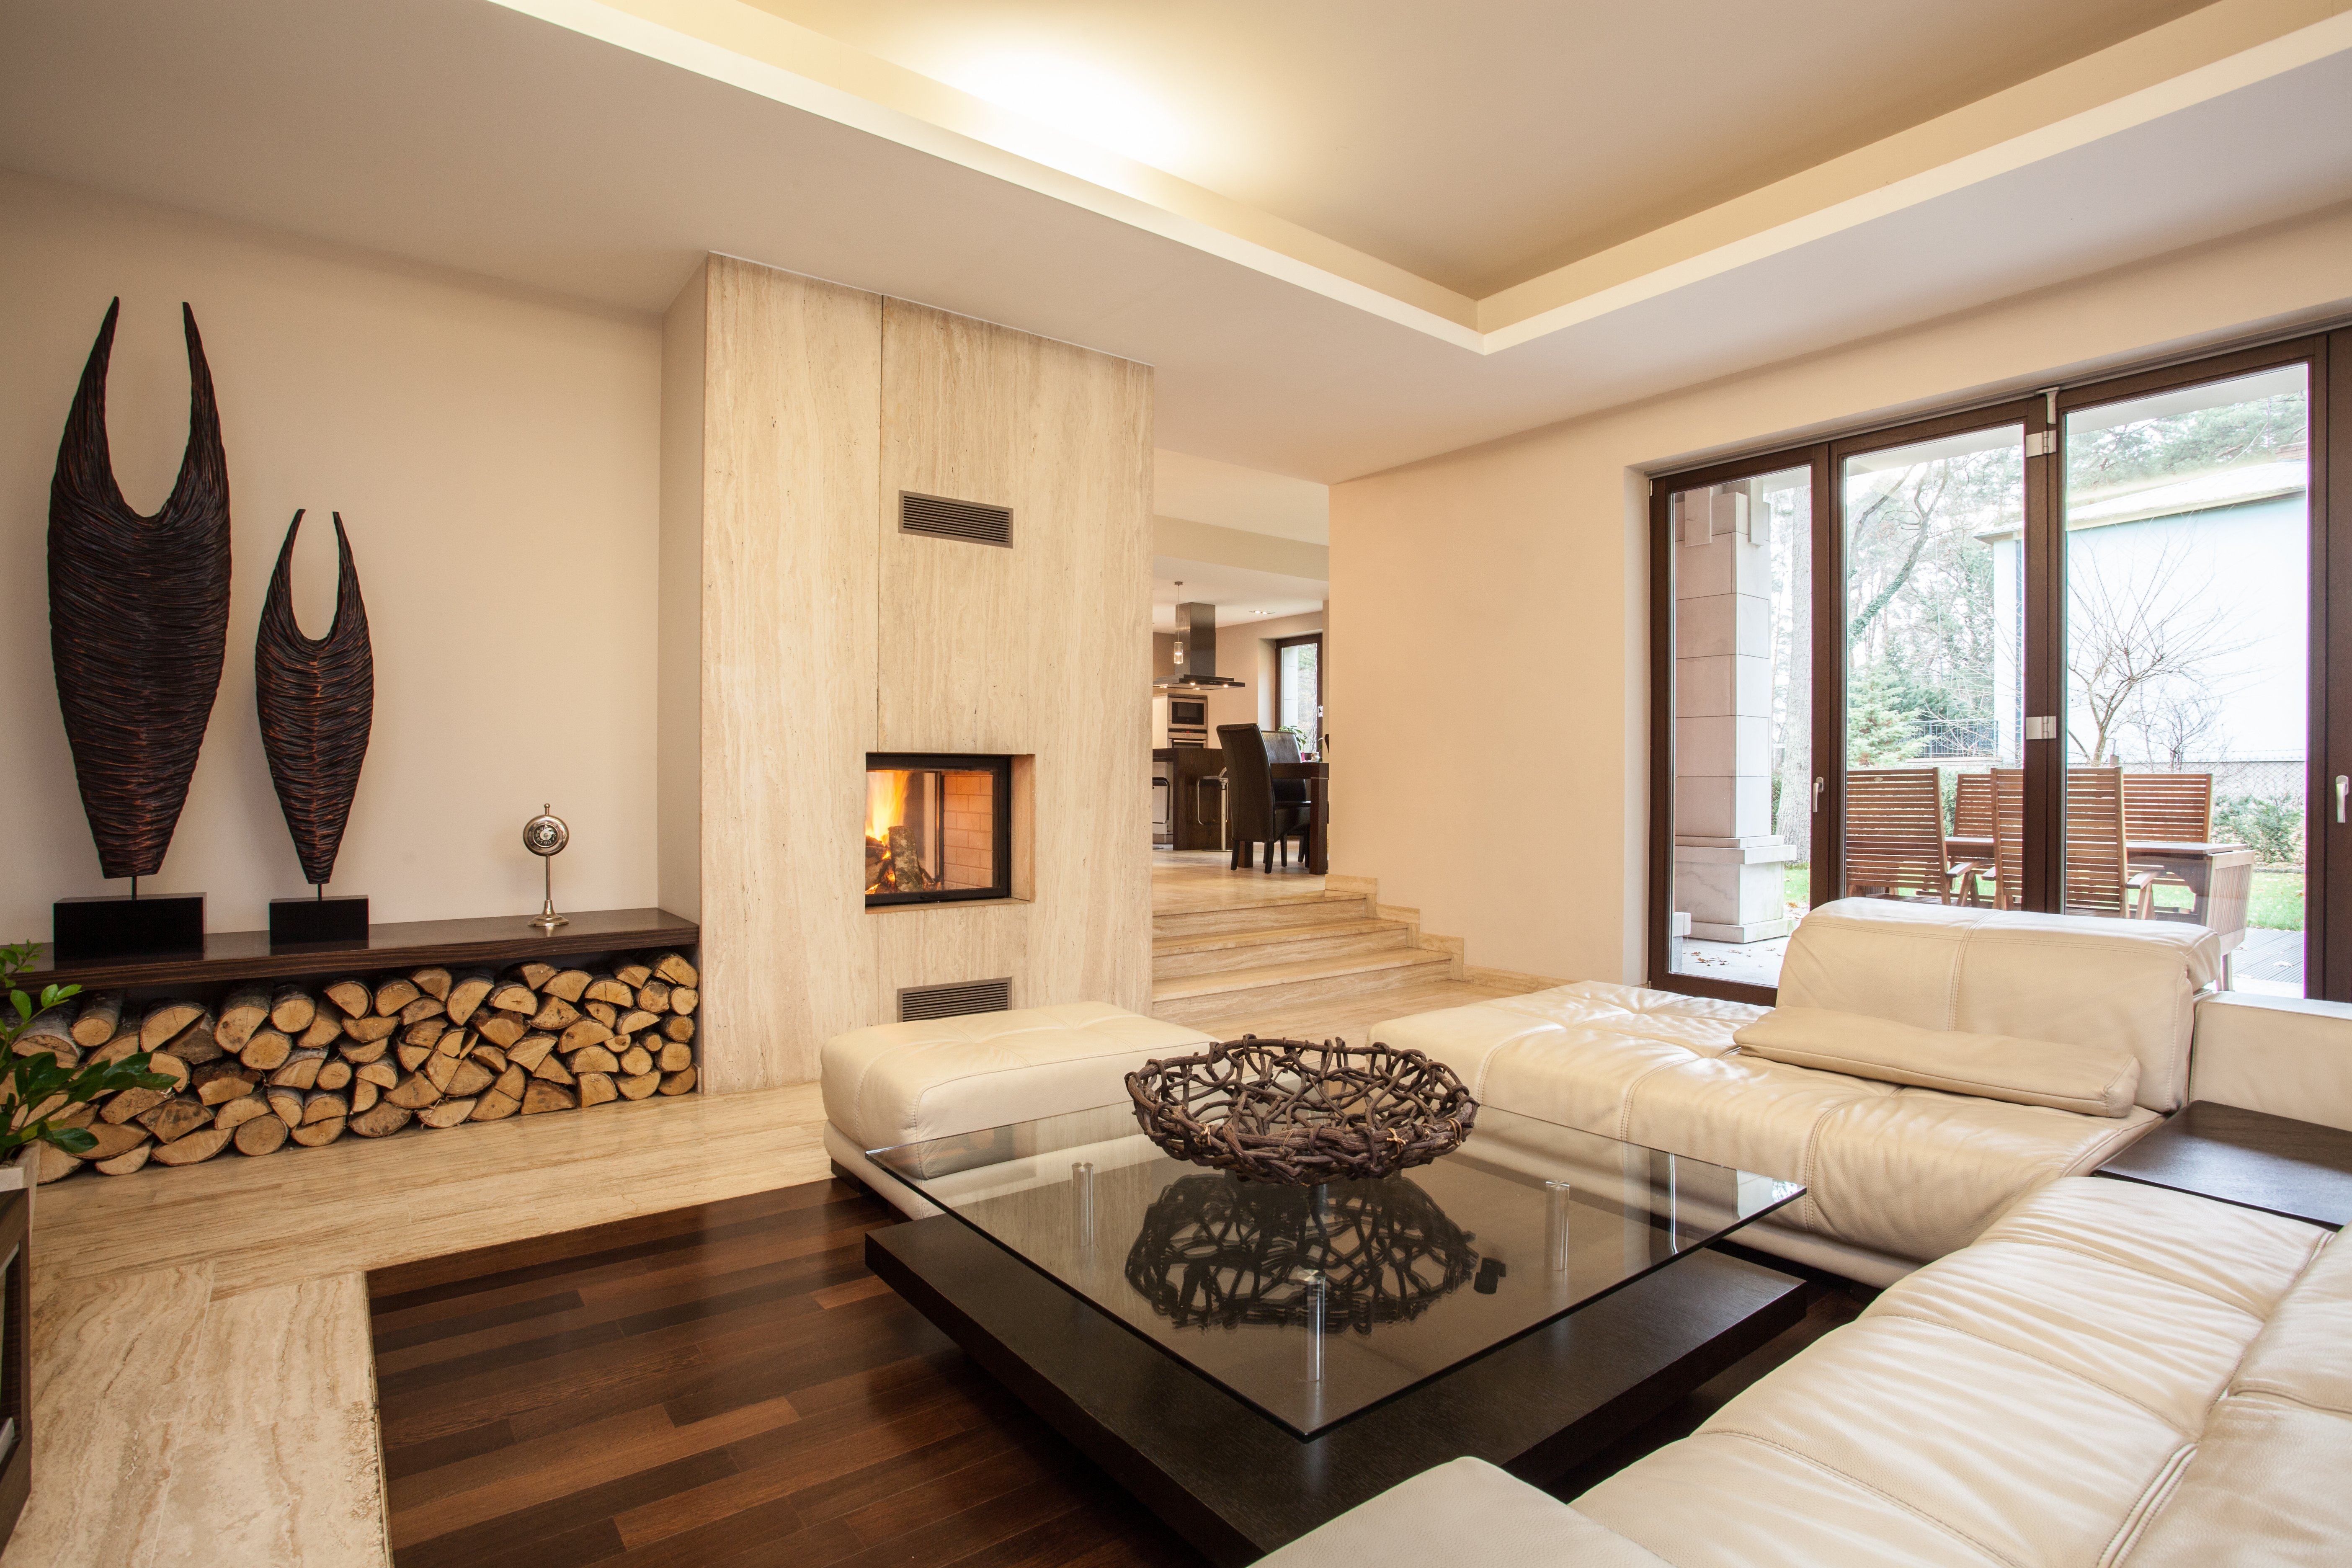 Travertine house: interior of beige living room